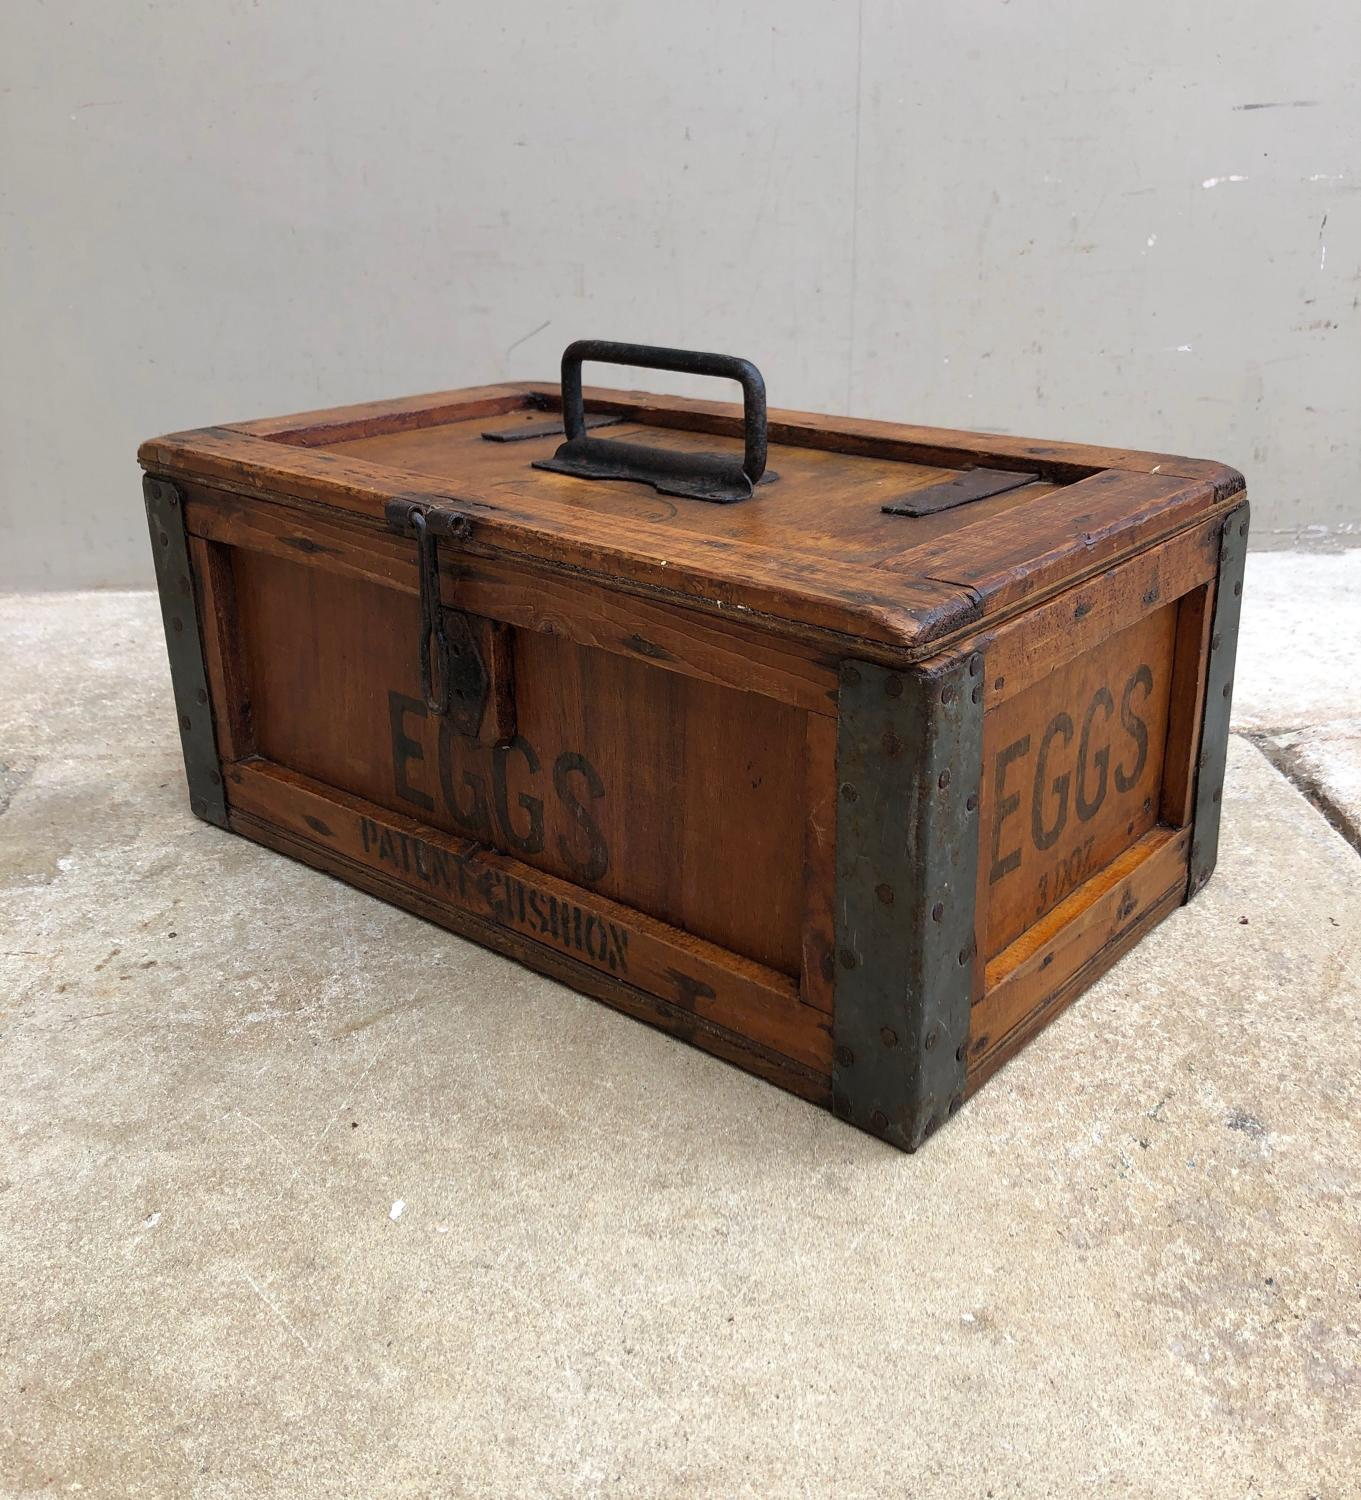 Early 20th Century Travelling Eggs Box - Dairy Outfit Co Ltd